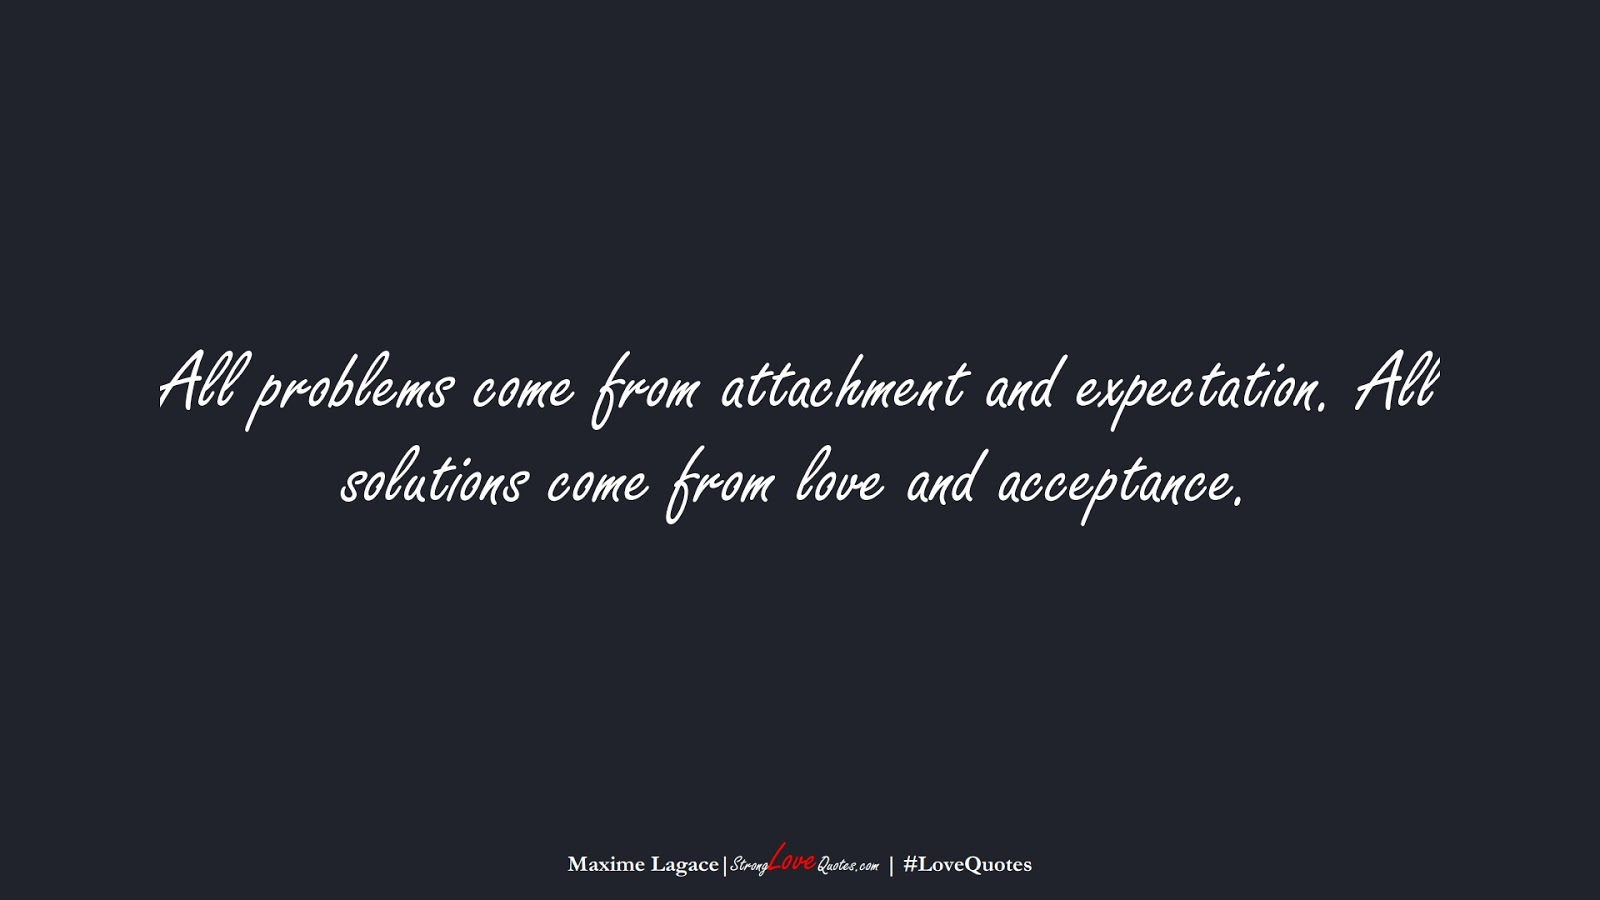 All problems come from attachment and expectation. All solutions come from love and acceptance. (Maxime Lagace);  #LoveQuotes